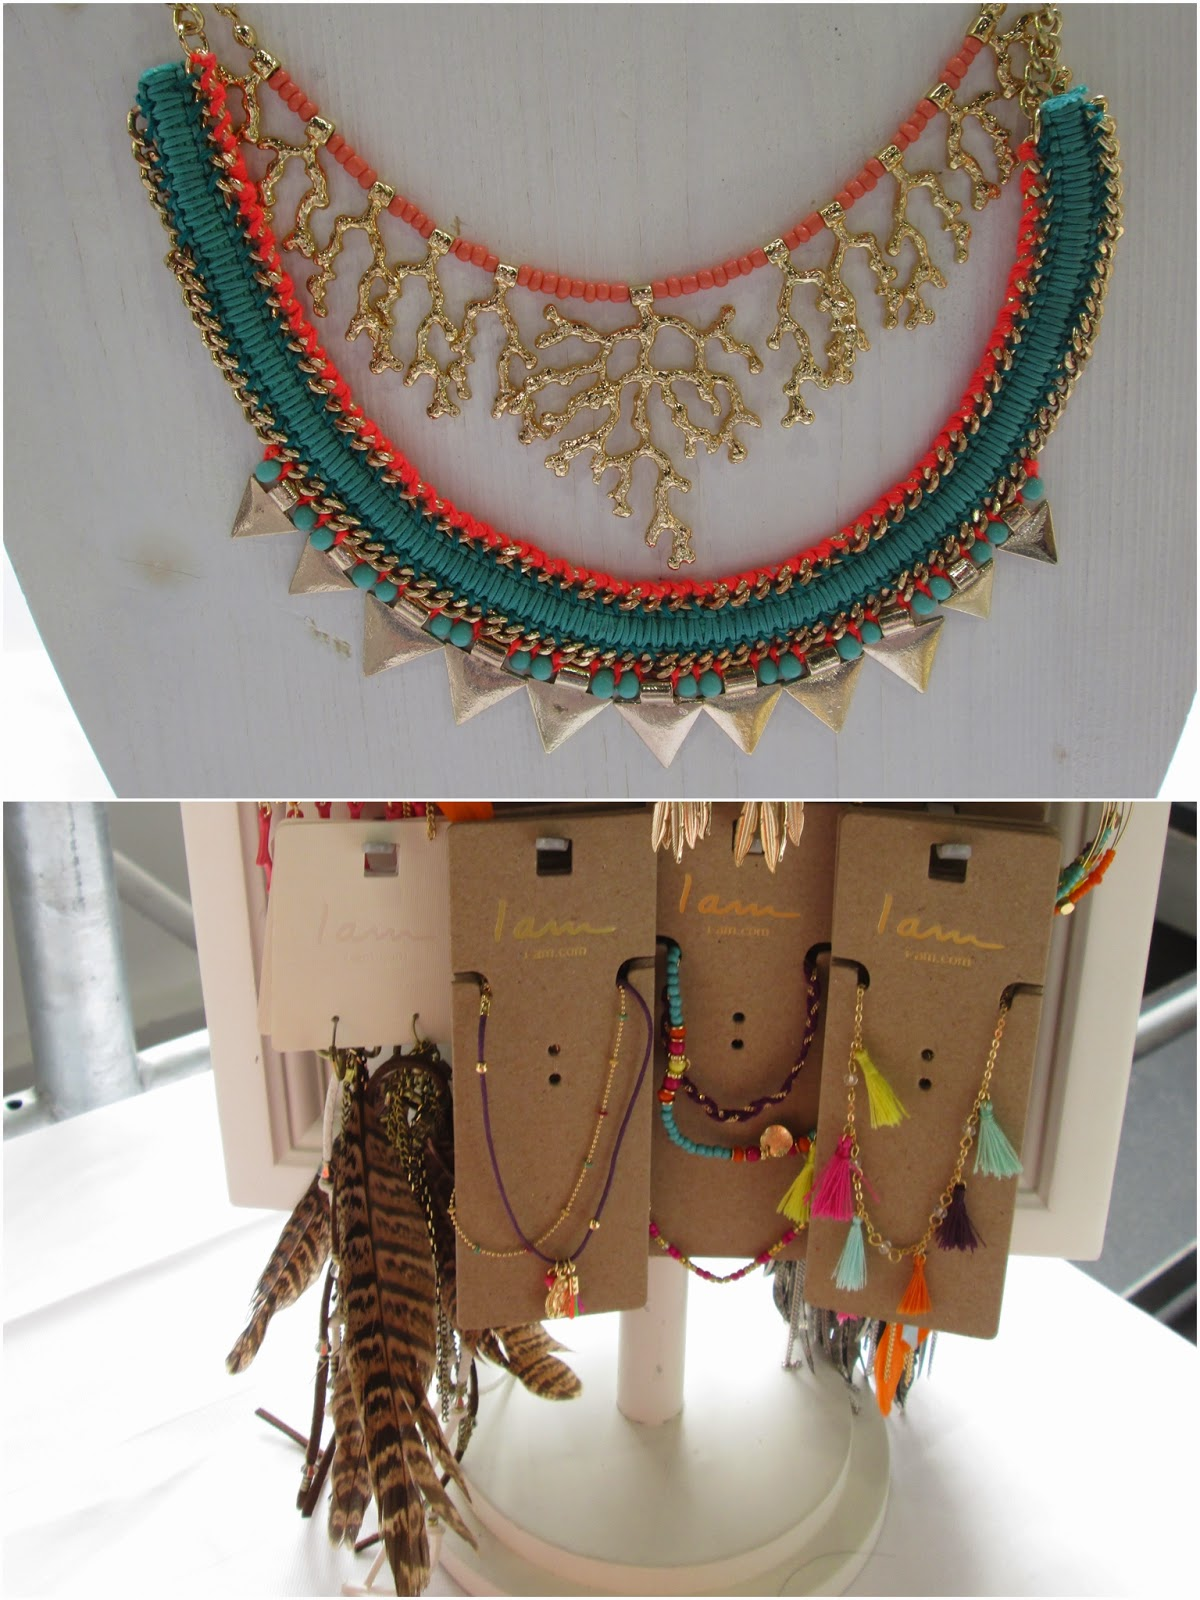 Six schmuck  Ari Sunshine | Ü40 Mode Blog Hamburg Schleswig-Holstein : Pressday ...